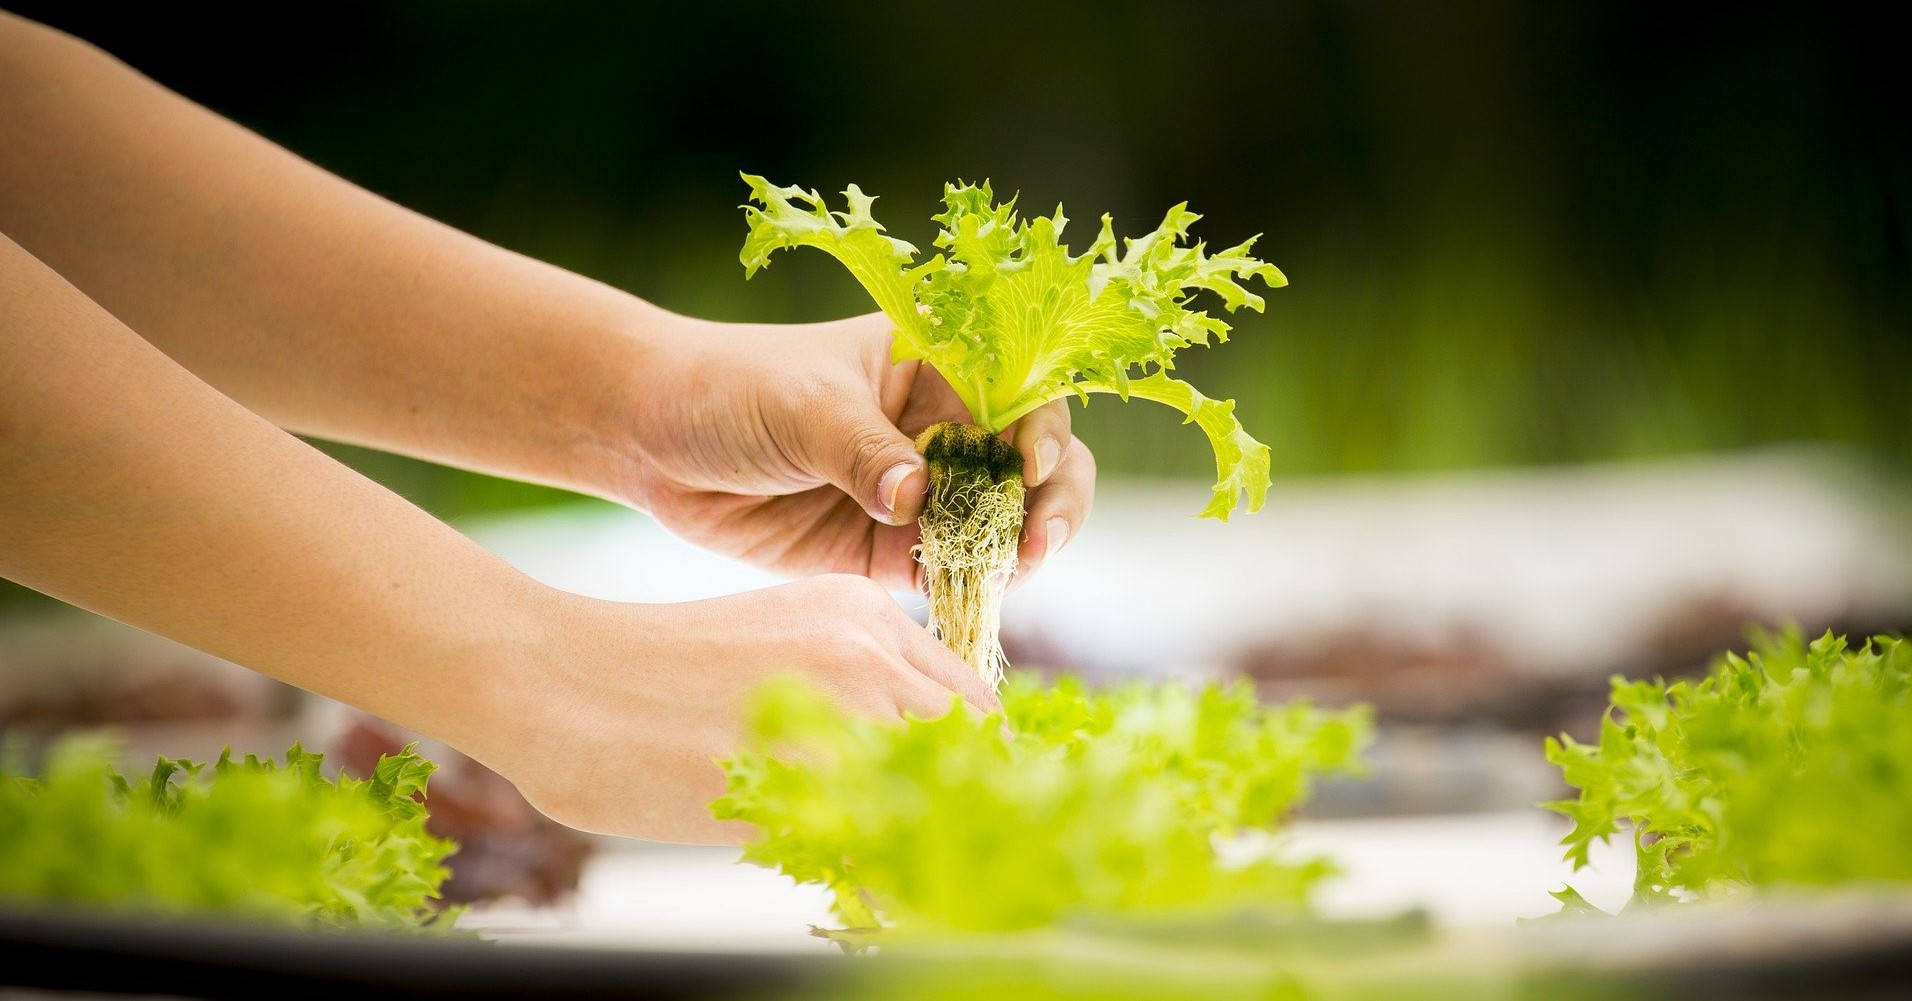 6 types of hydroponics systems